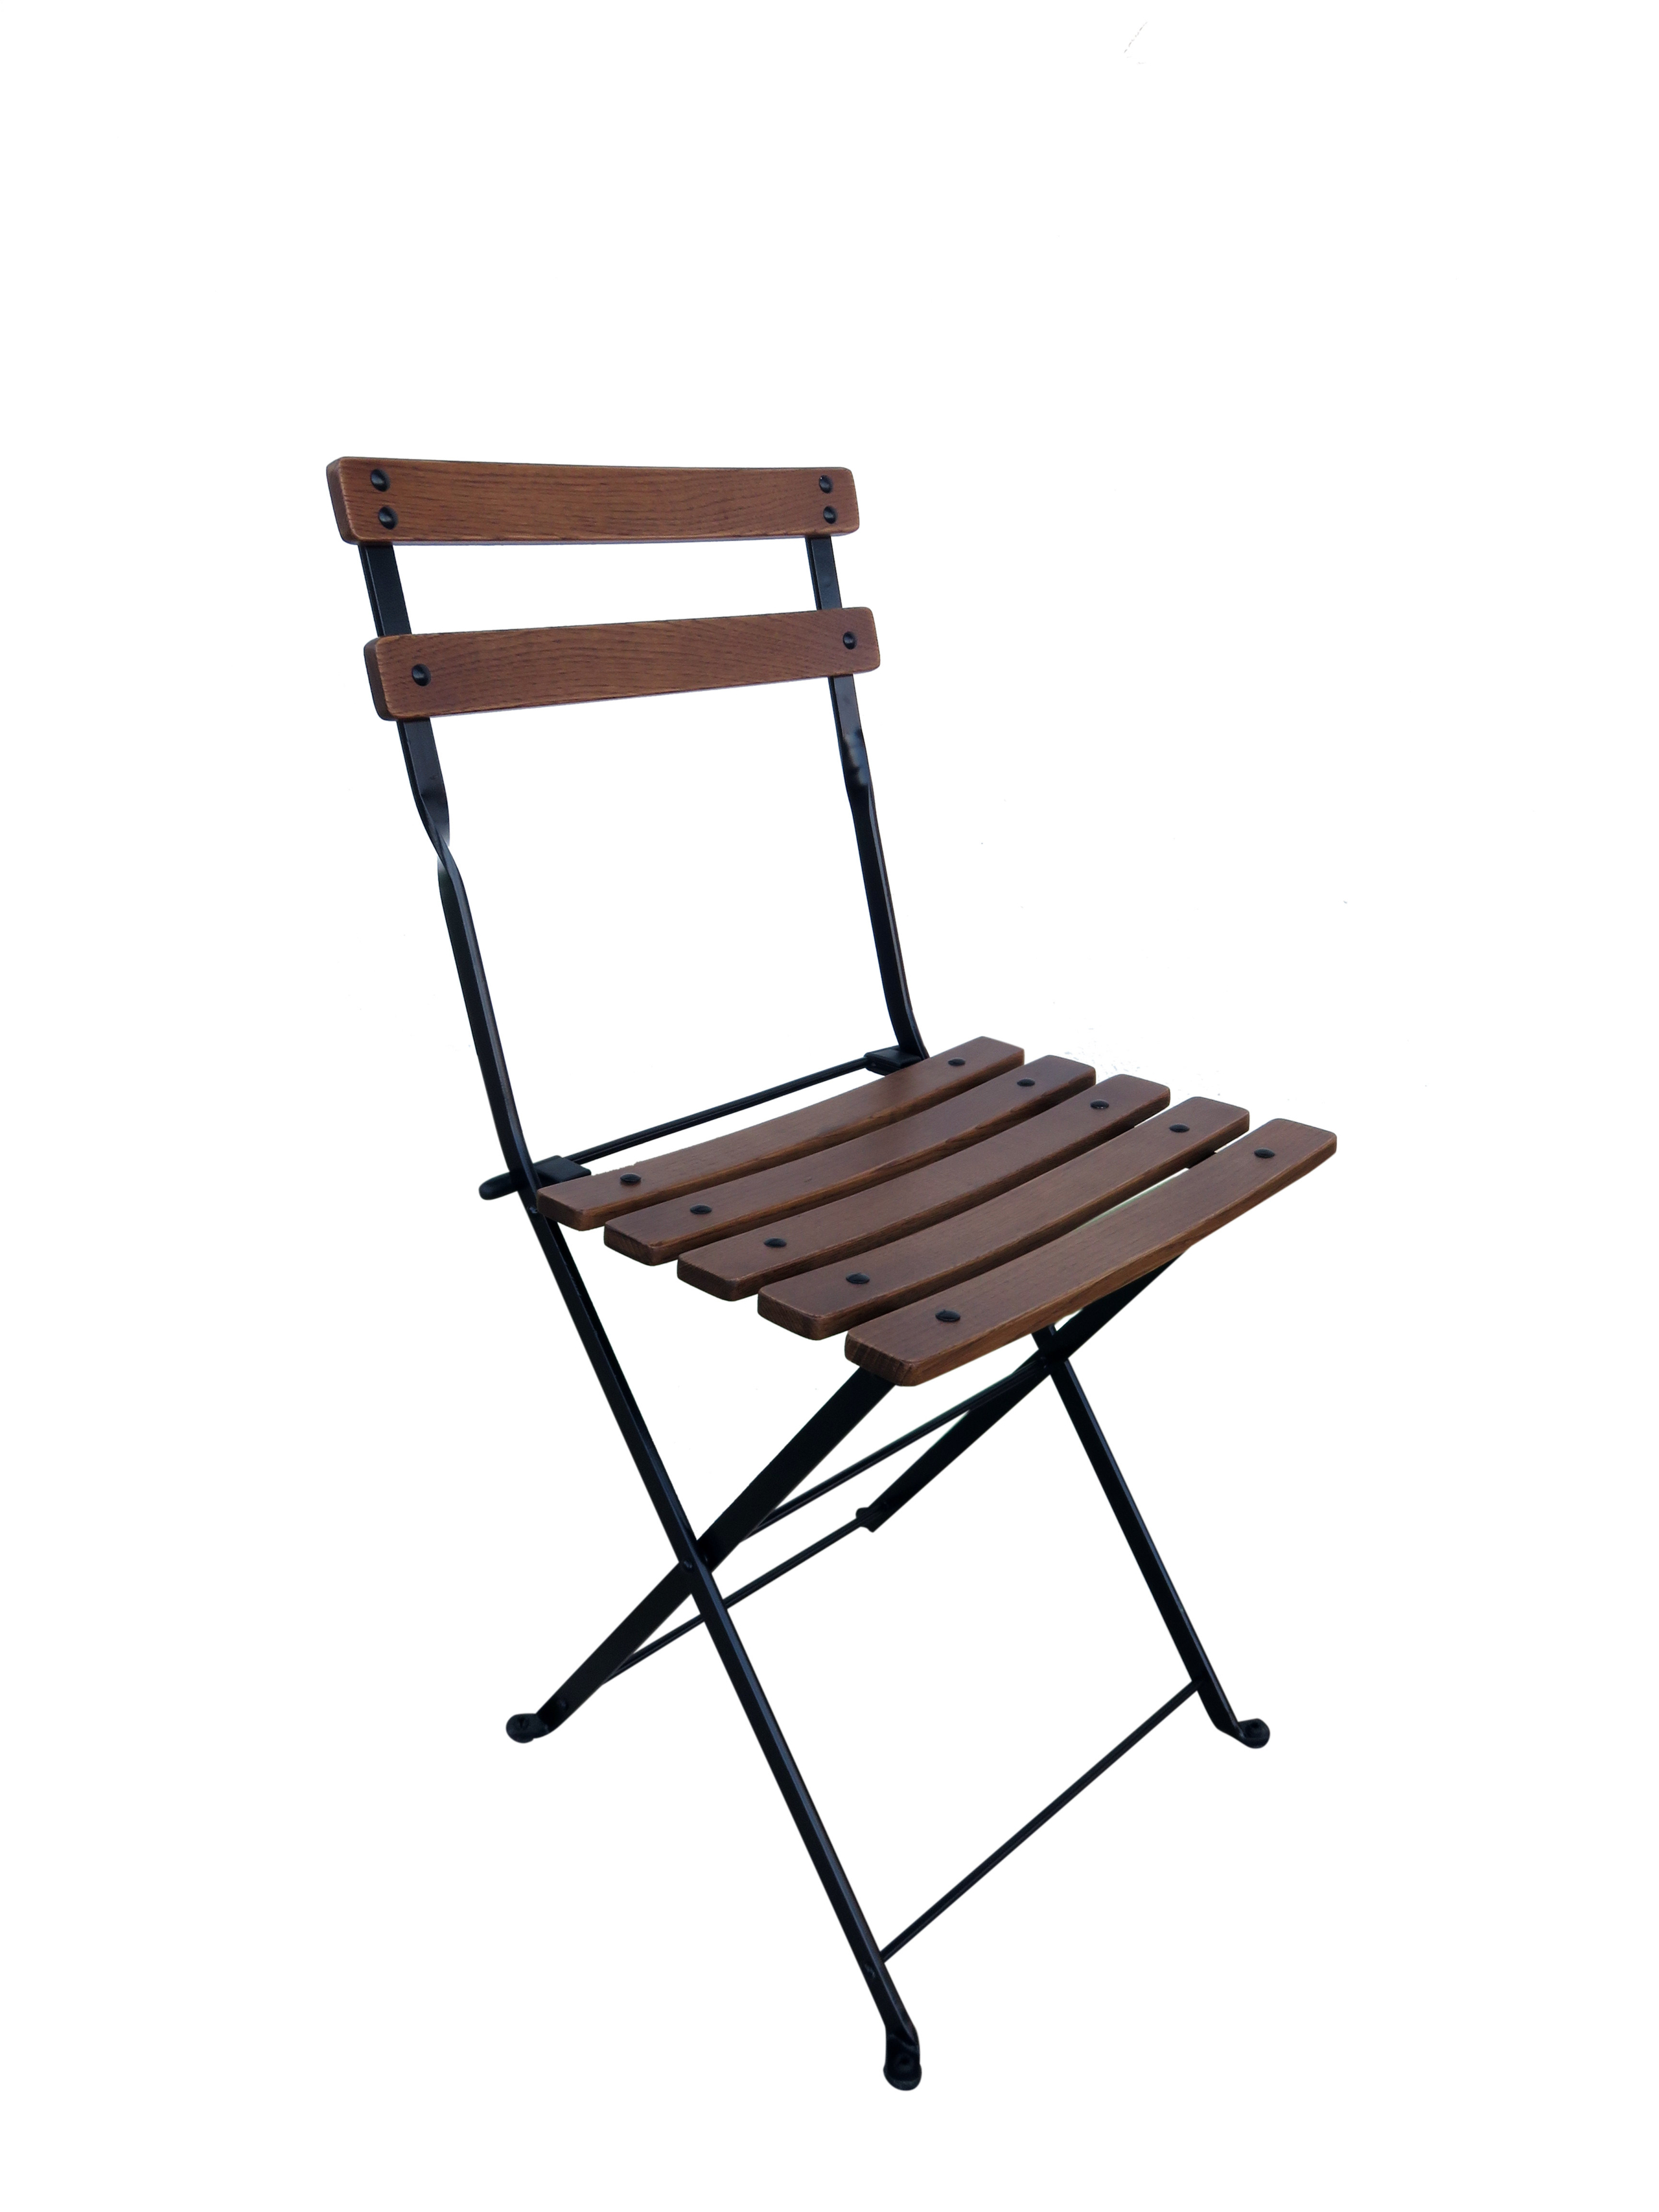 Superb Furniture DesignHouse Handcrafted French Bistro European Cafe Folding Side  Chair With Curved Chestnut Wood Slats,